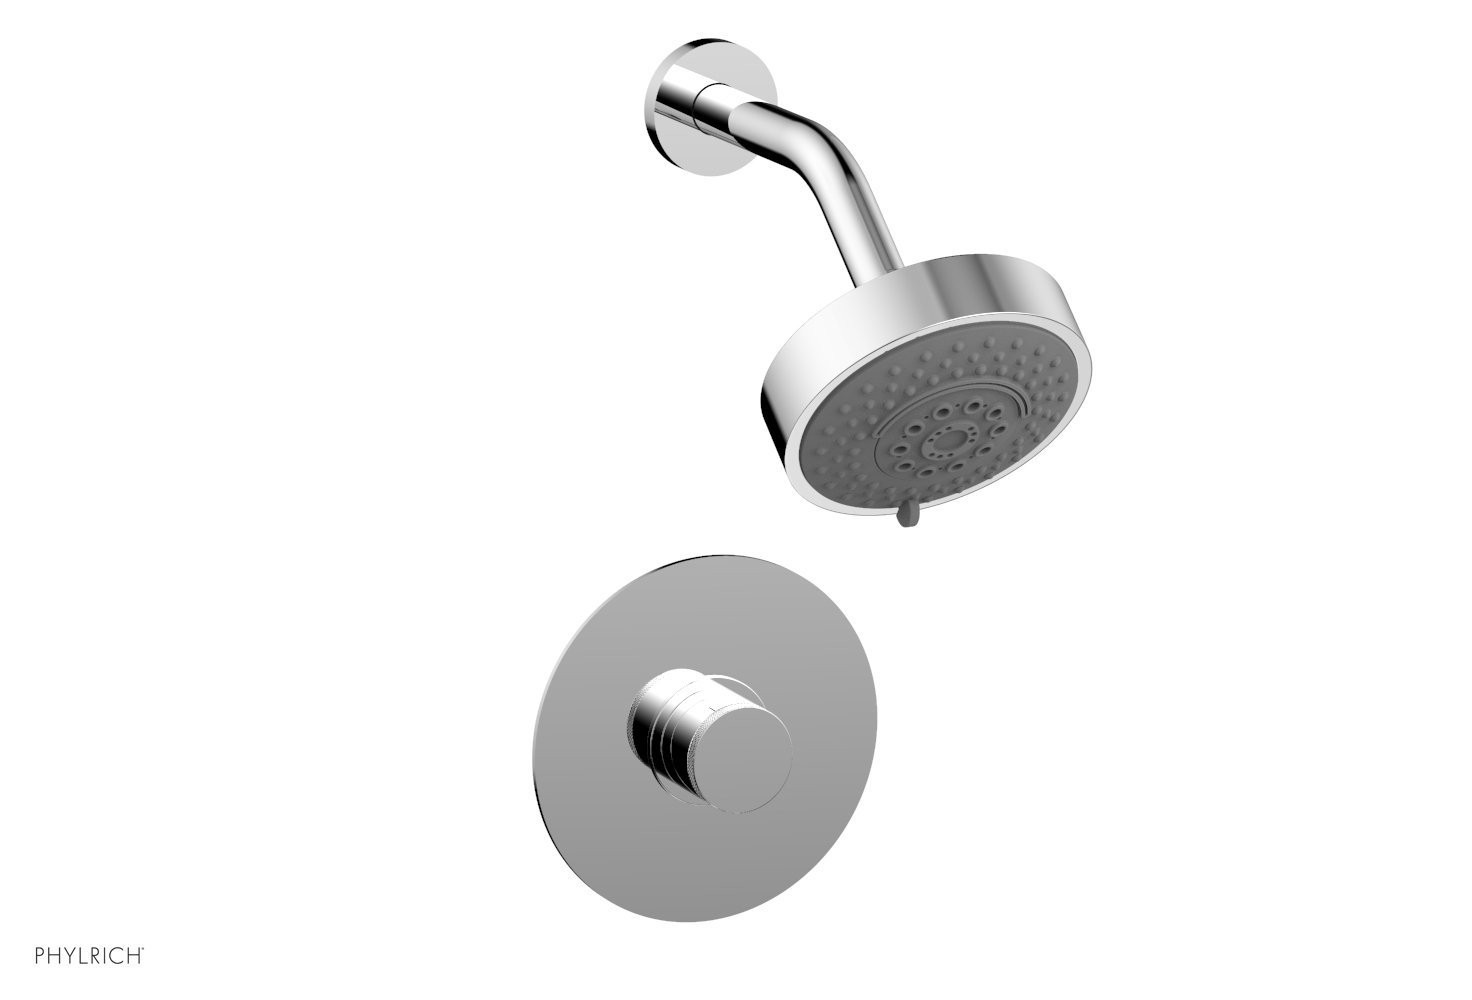 PHYLRICH 230-21 BASIC II WALL MOUNT PRESSURE BALANCE SHOWER SET WITH KNURLED HANDLE